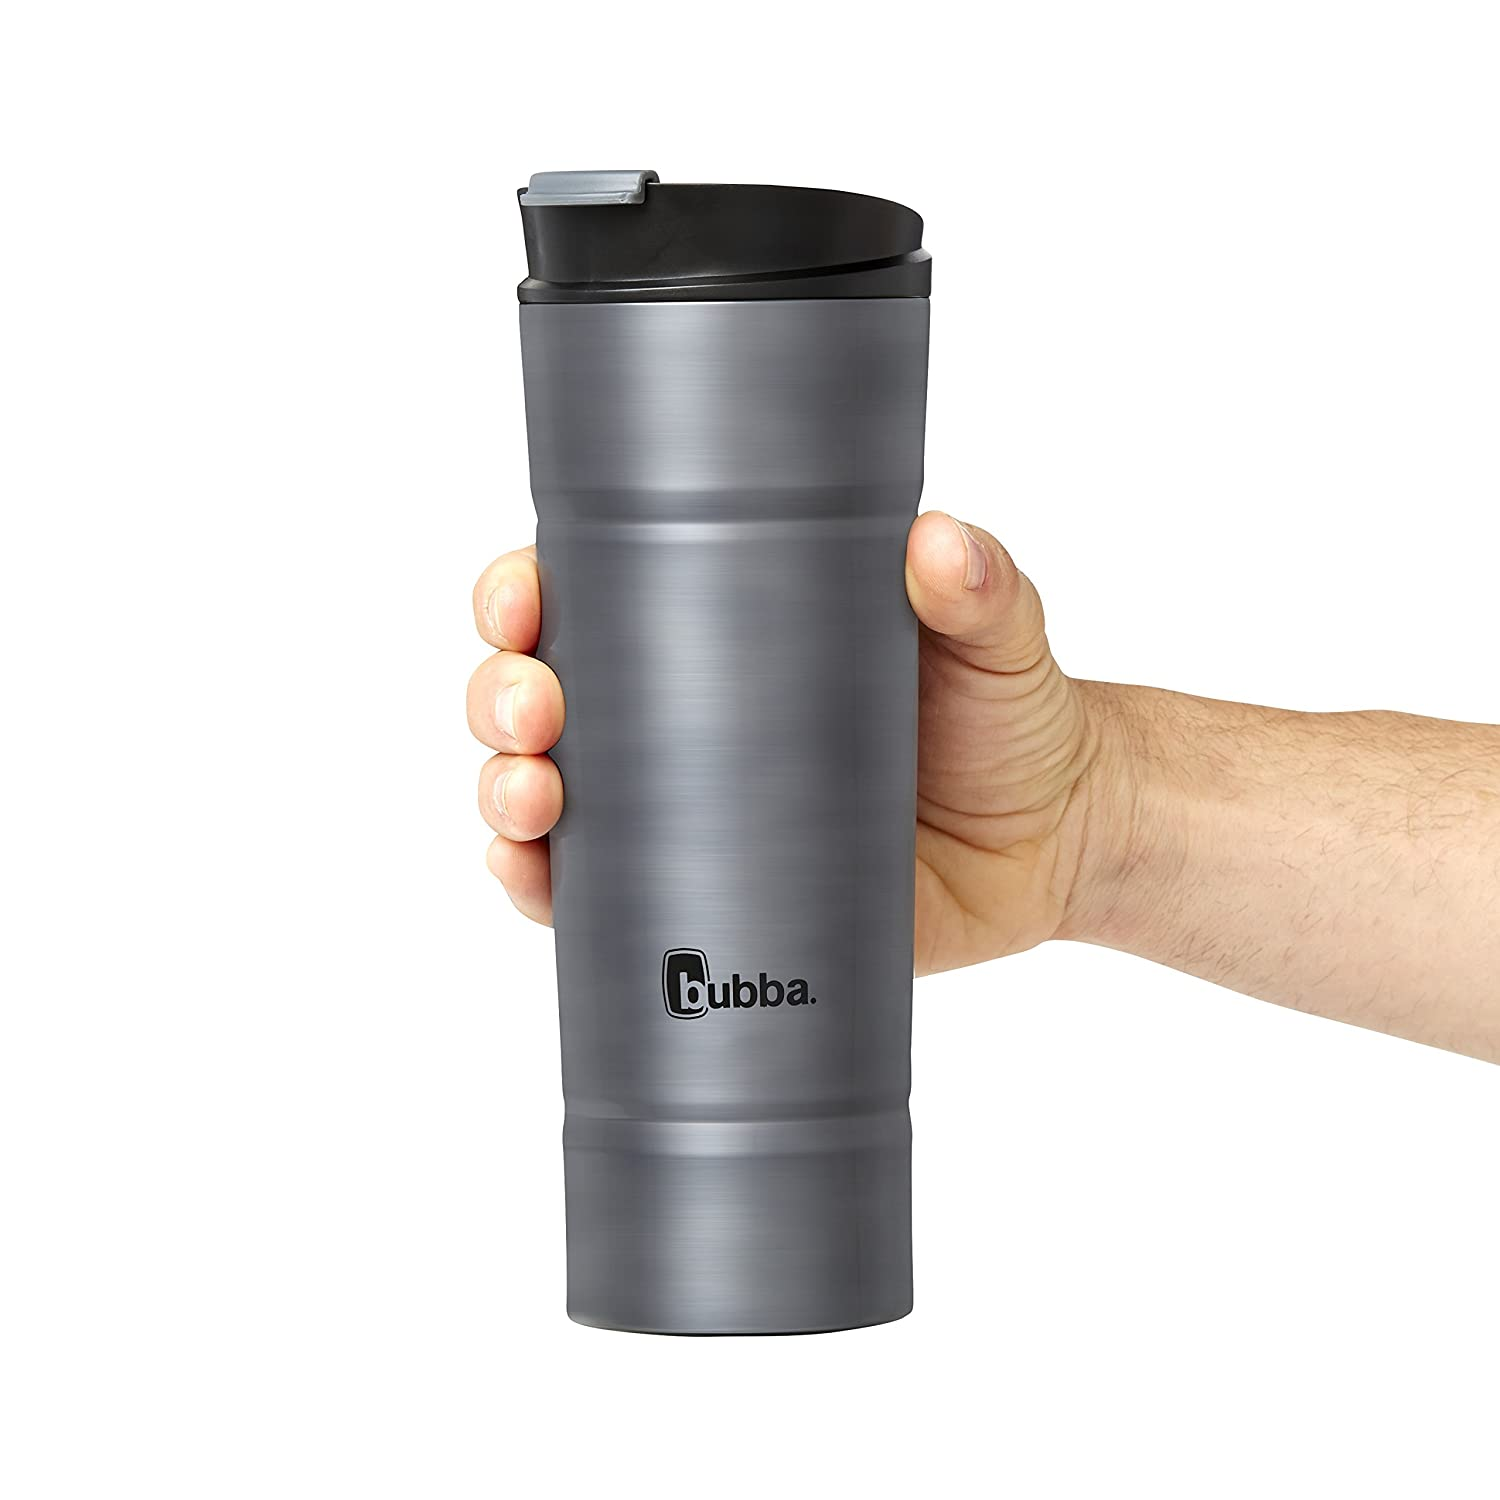 9e47d7a0ea5 Bubba HT Vacuum-Insulated Stainless Steel Travel Mug, 20 oz, Smoke